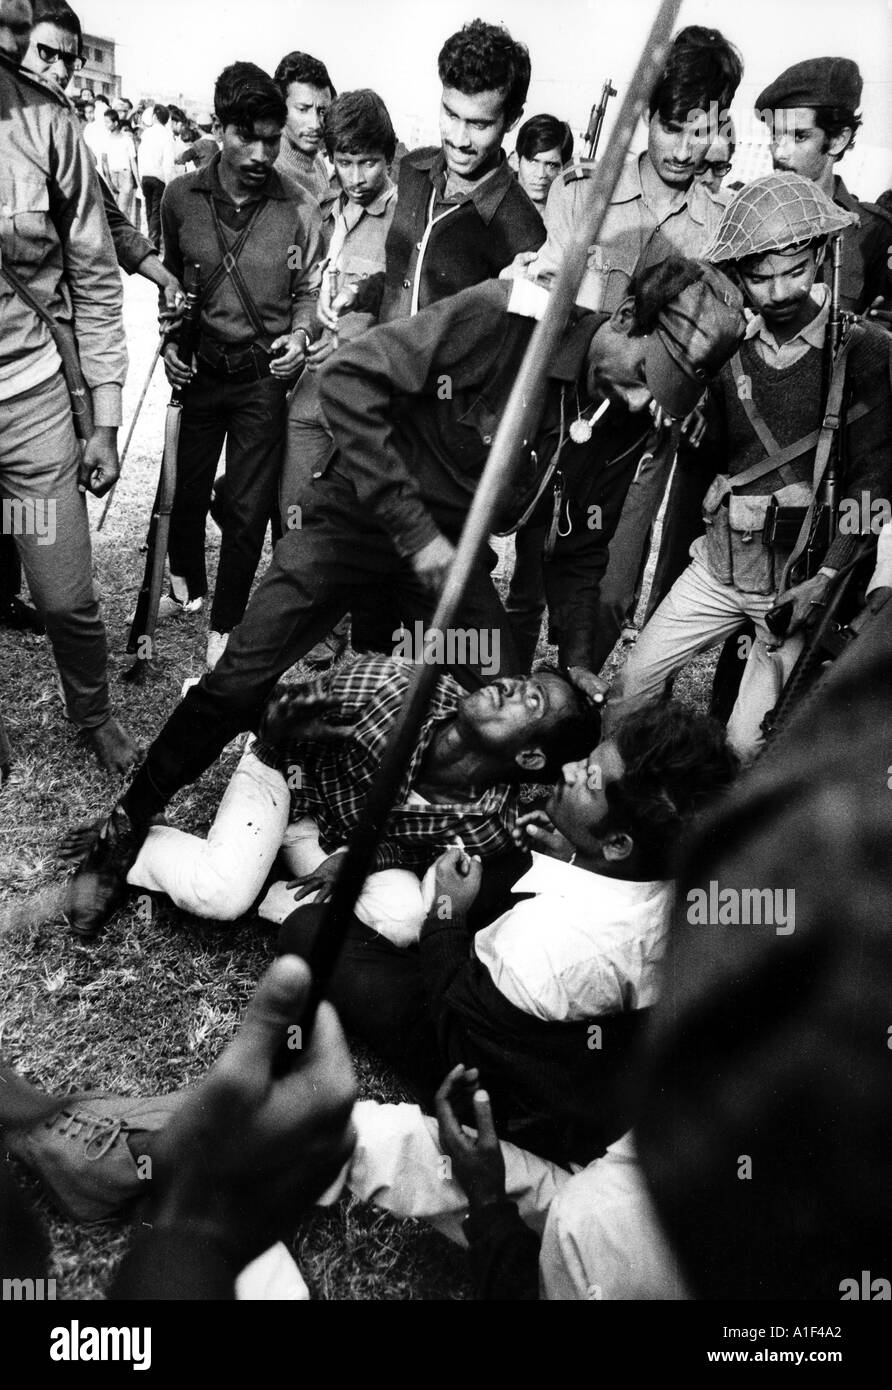 During victory rally in Dacca stadium the Mukti Bahini torture and bayonet 5 young men 4 killed Collaboraters  - Stock Image